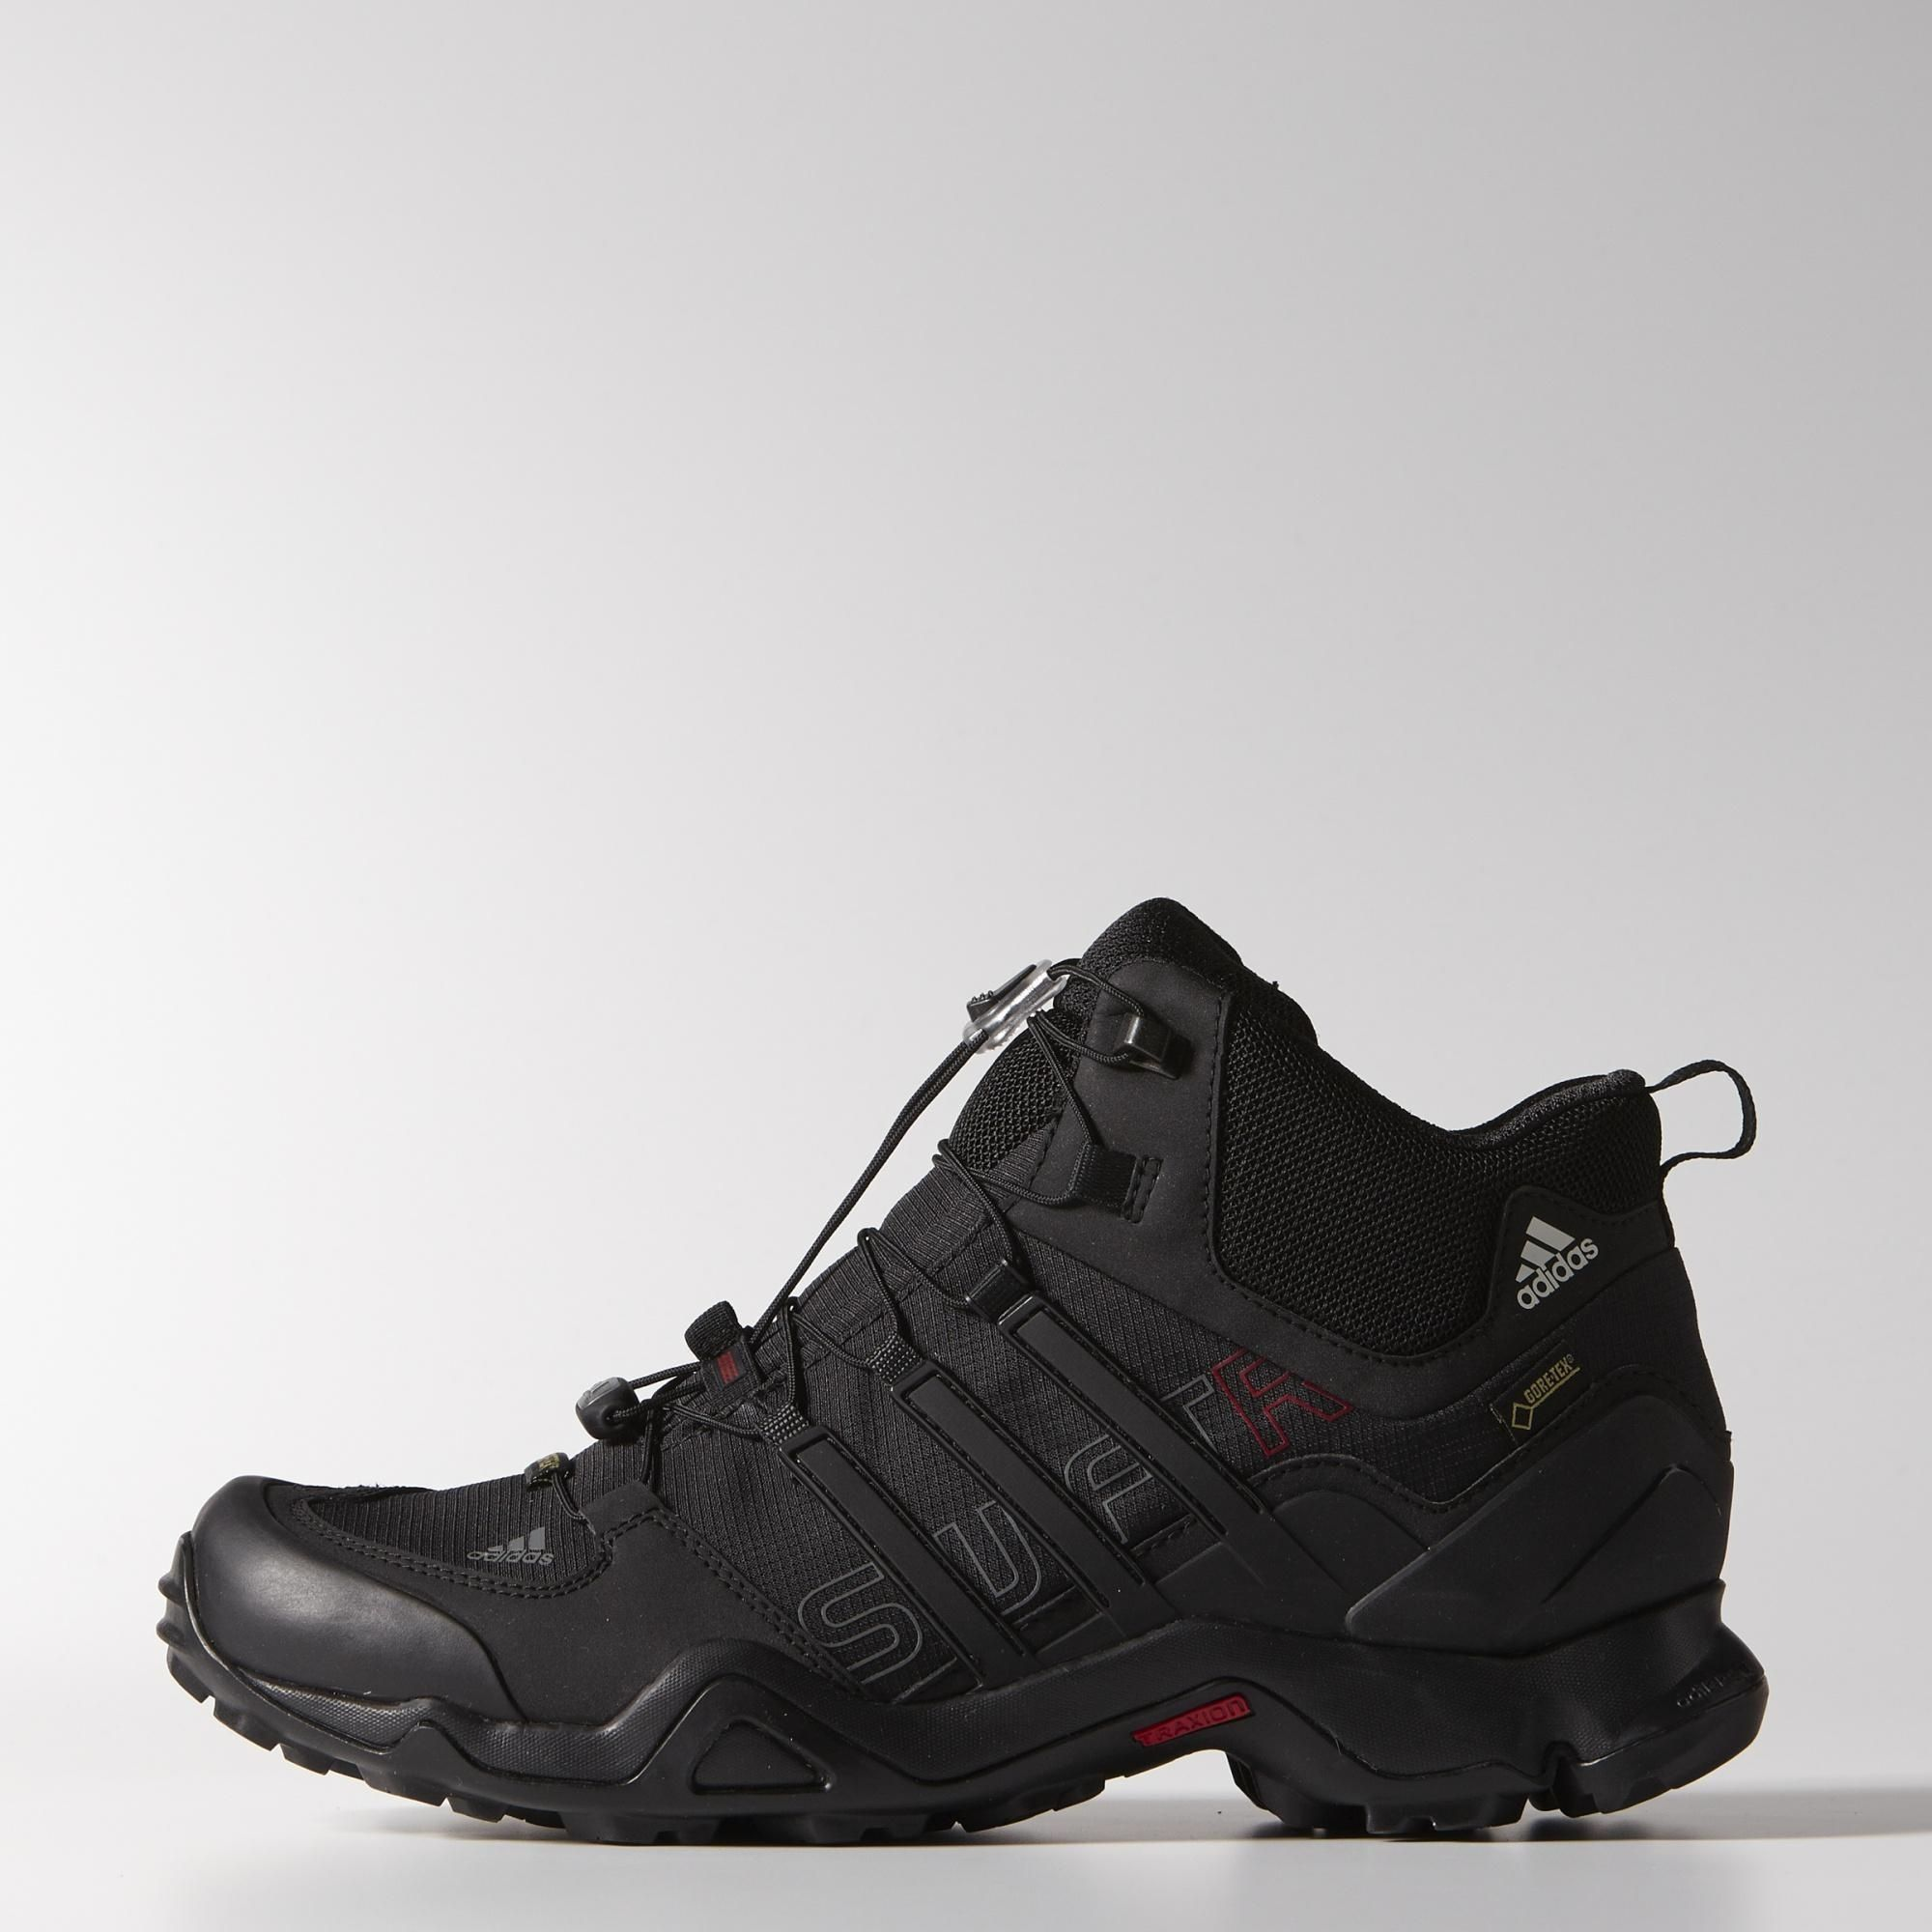 Mid Swift Terrex Adidas Outdoor De Gtx R Zapatillas Chile tq4AwXx1X